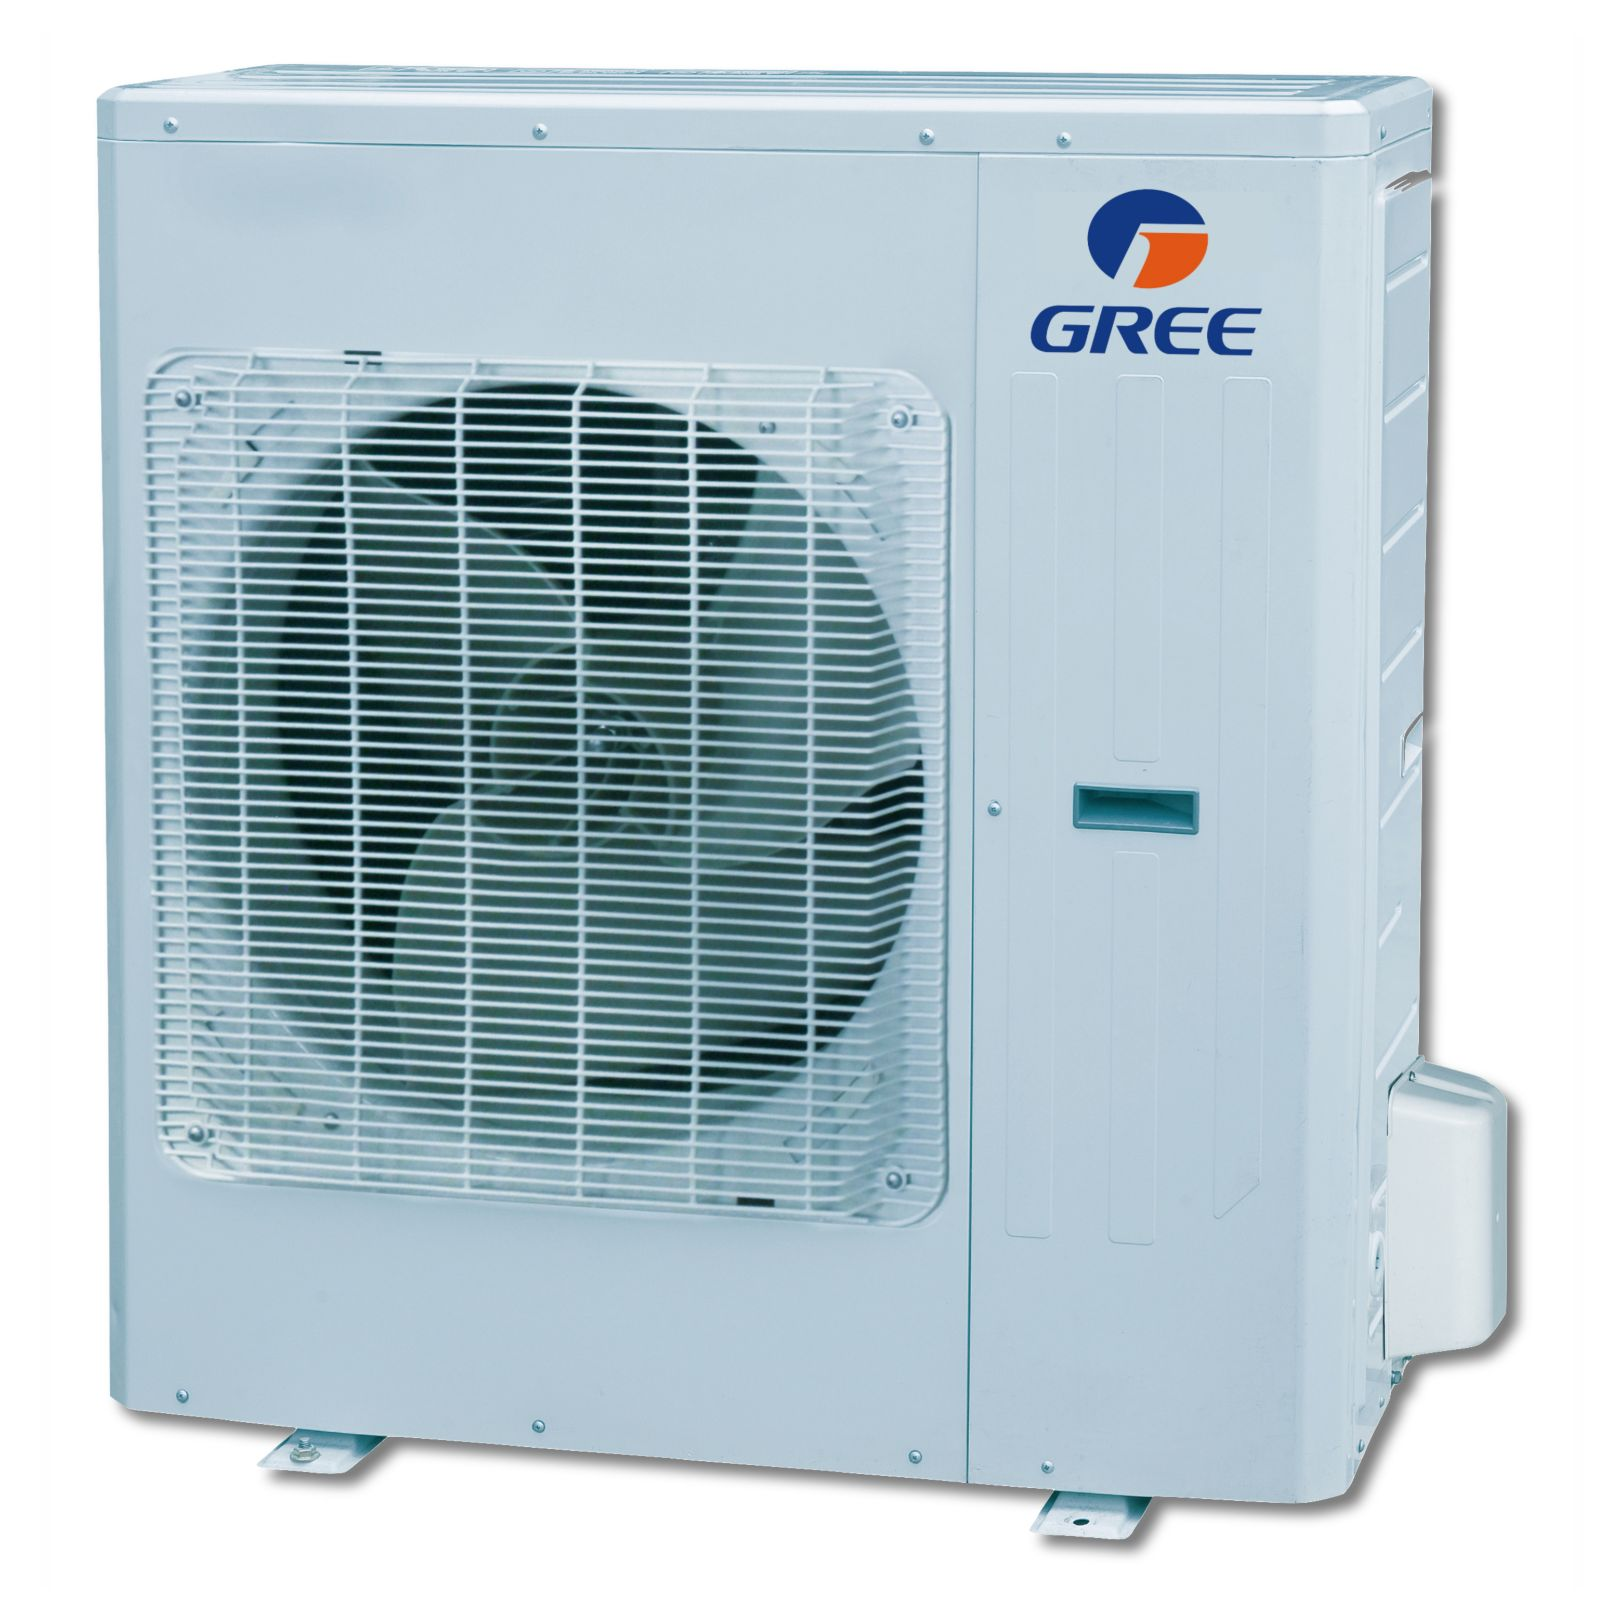 GREE UMAT36HP230V1AO - U-Match 36,000 BTU/h, 16 SEER  Inverter Heat Pump Condensing Unit, 208-230 Volt, 60 Hz